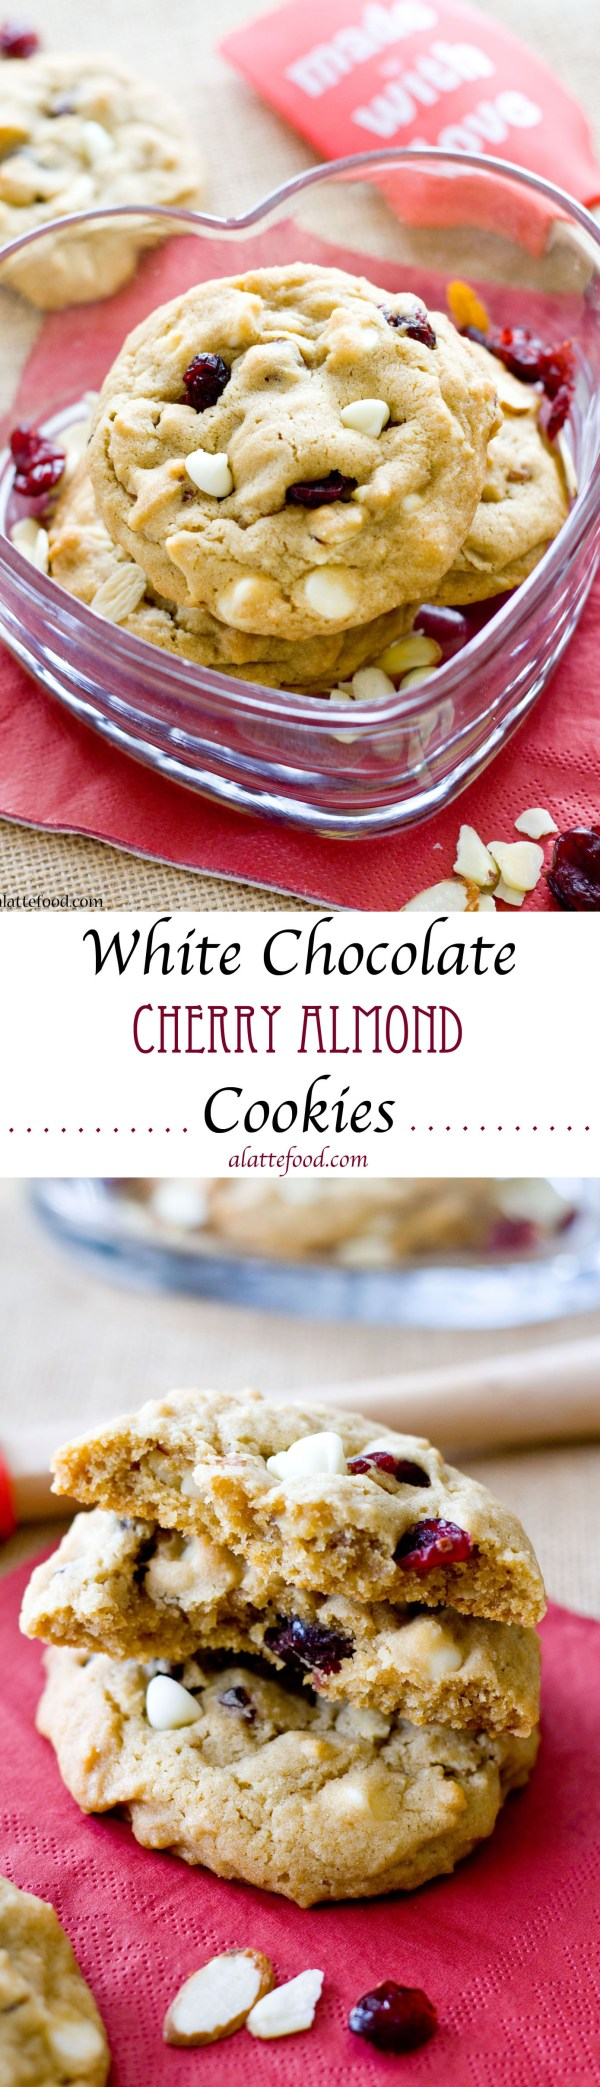 These soft cookies are thick, chewy, and packed with white chocolate chips, cherries, and amazing almond flavor!